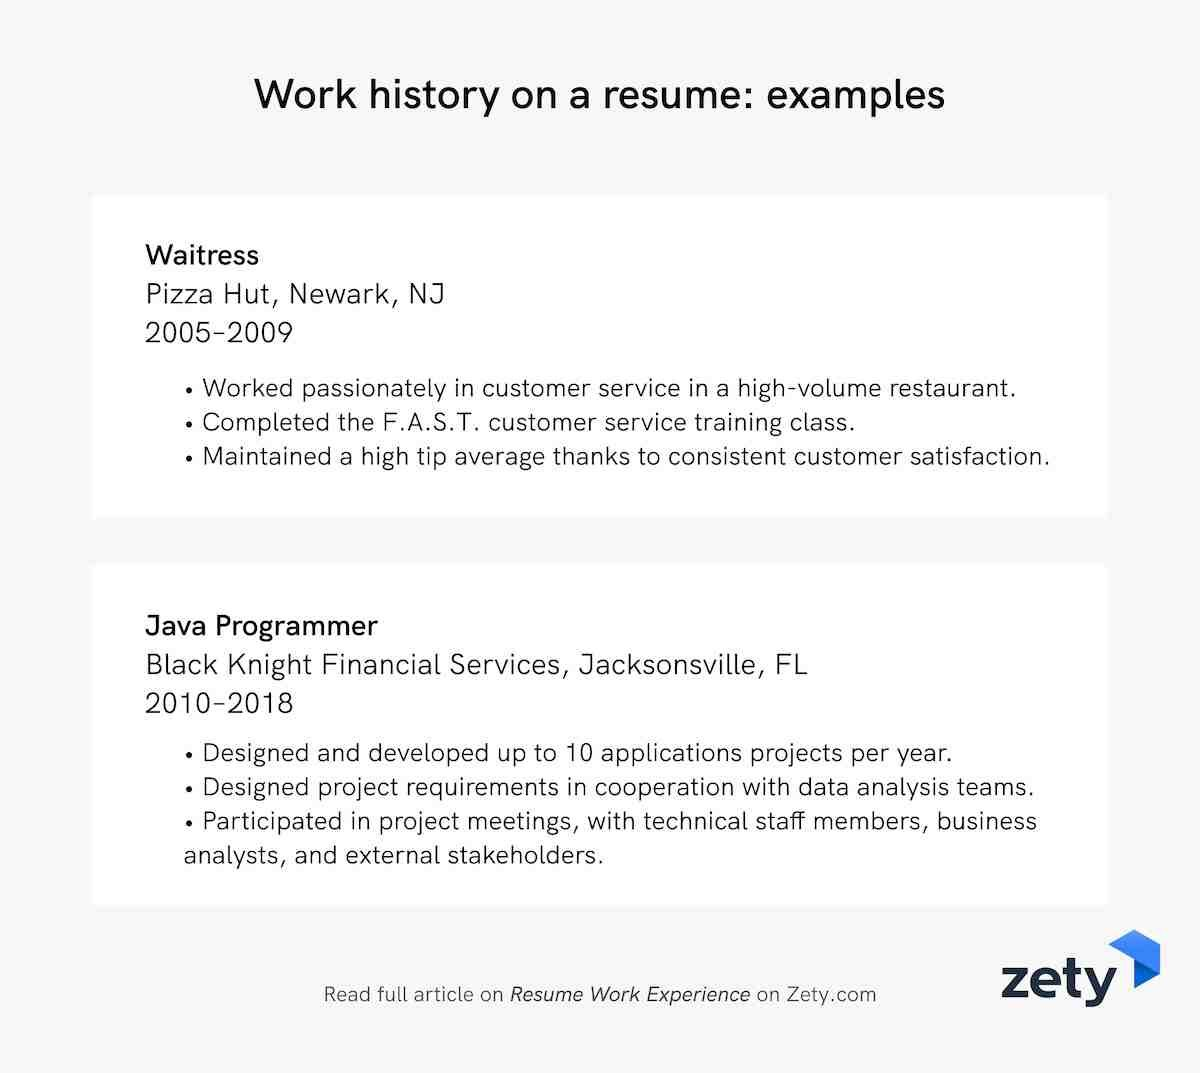 resume work experience history job description examples with on new social worker avaya Resume Resume With Long Work History